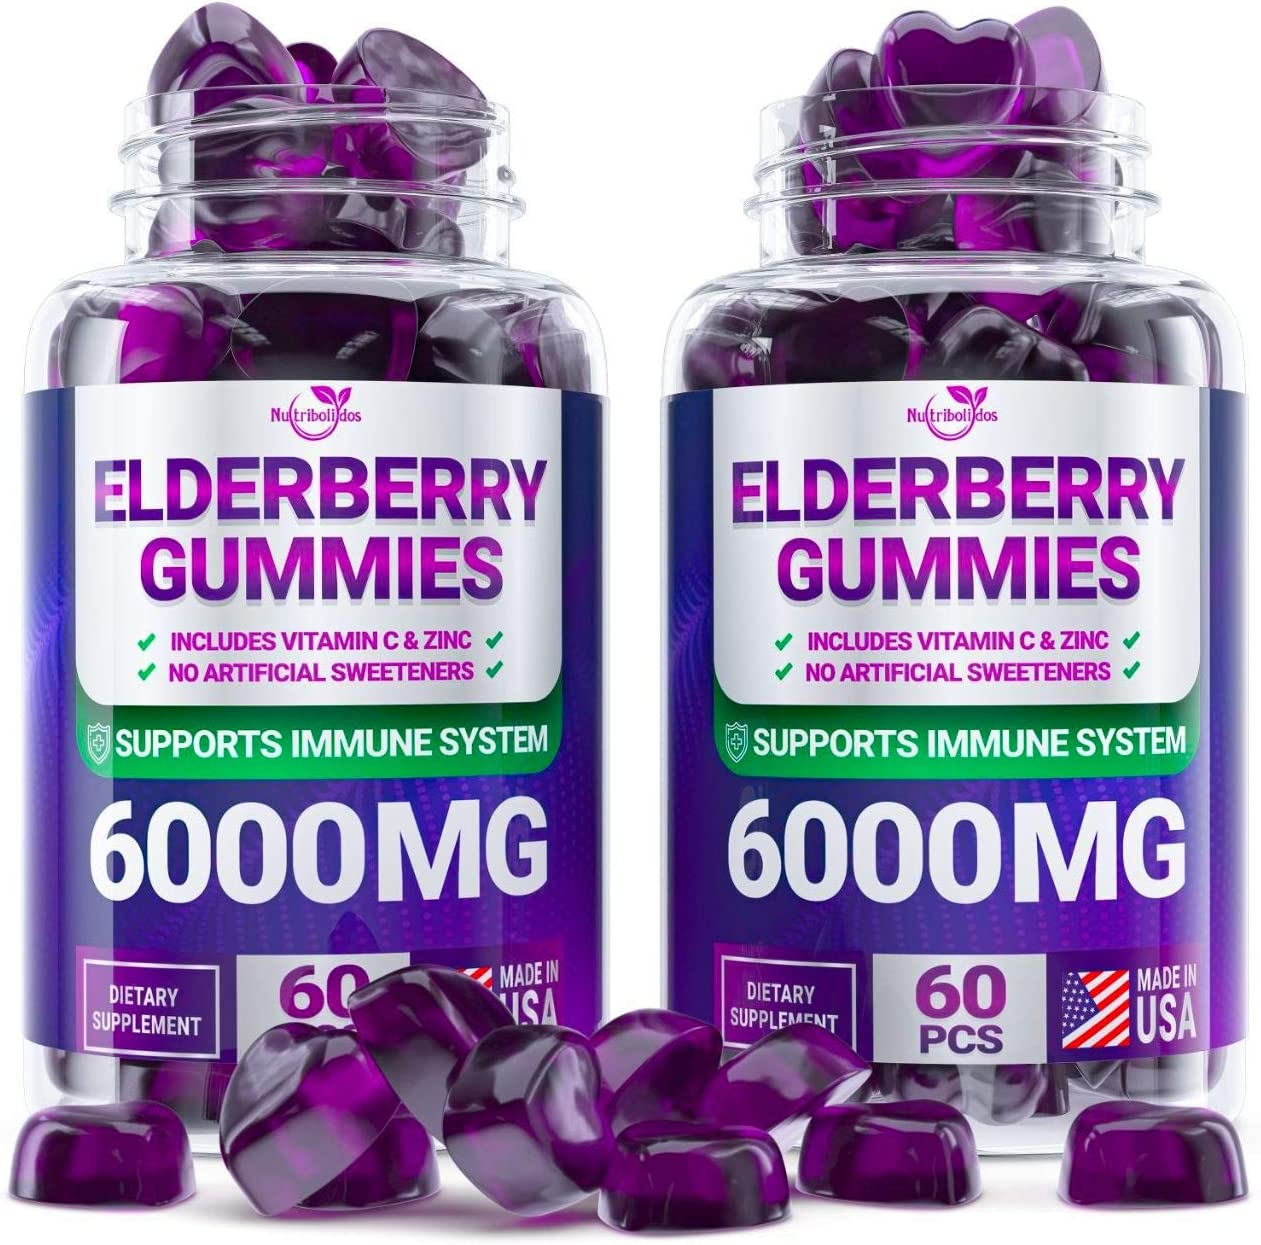 (2 - Pack) Sаmbuсus Elderberry Gummies for Adults Kids Toddlers with Vіtаmіn С & Zіnс - Herbal Supplement for Immune Support, Skin Health - Powerful Antioxidant | - Made in USA - 120 Gummies